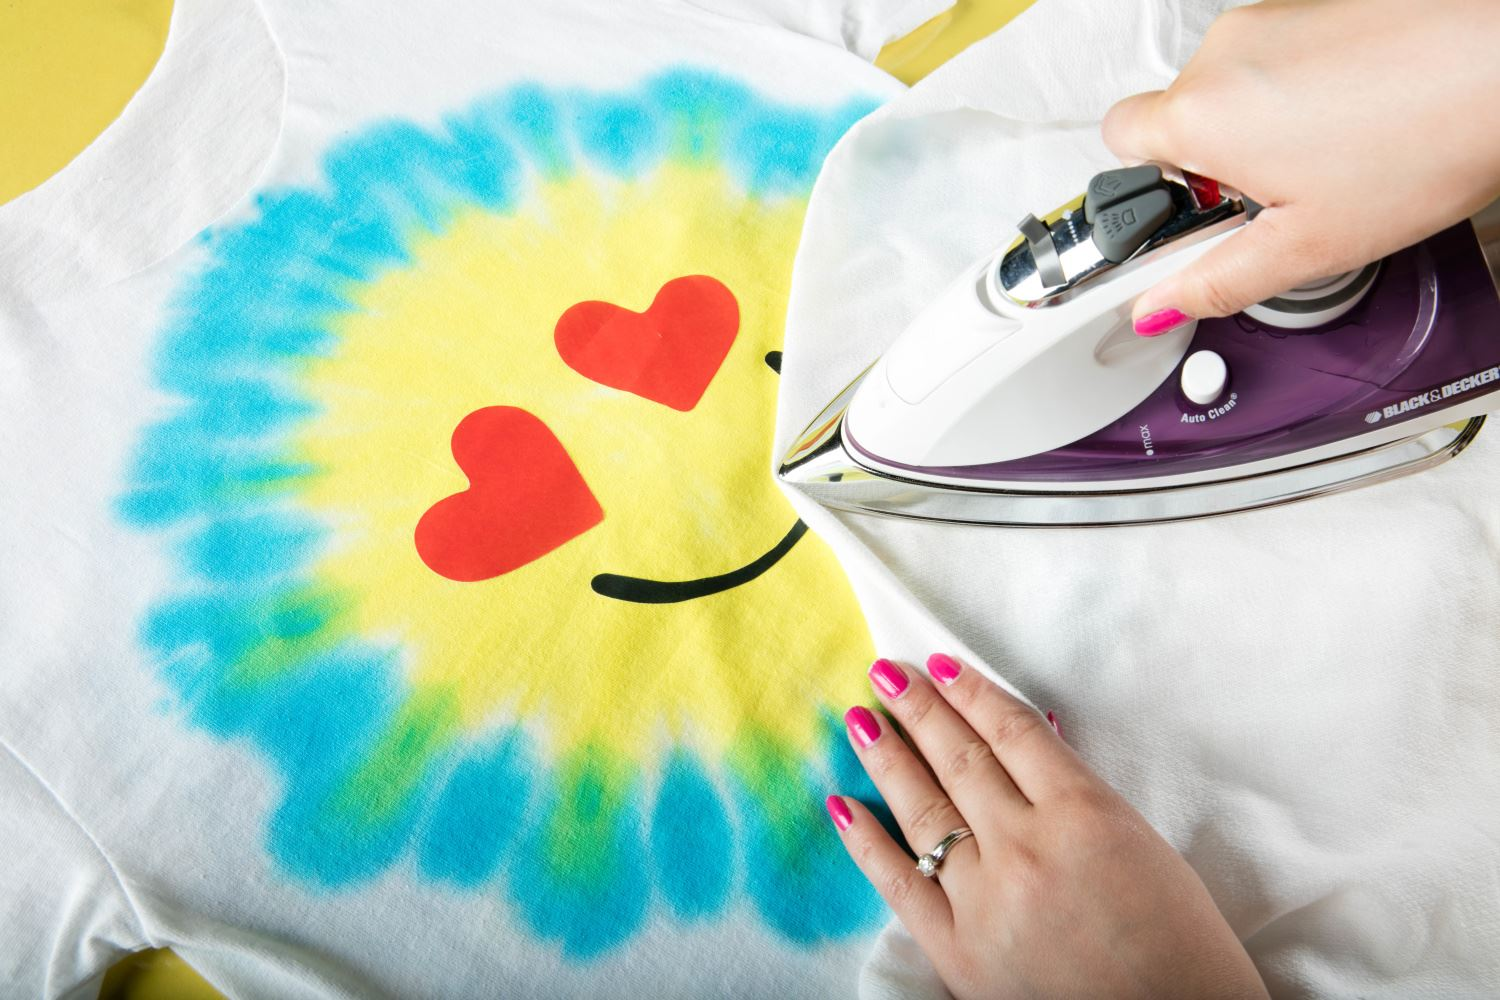 How to Emoji Tie Dye apply iron on appliqués